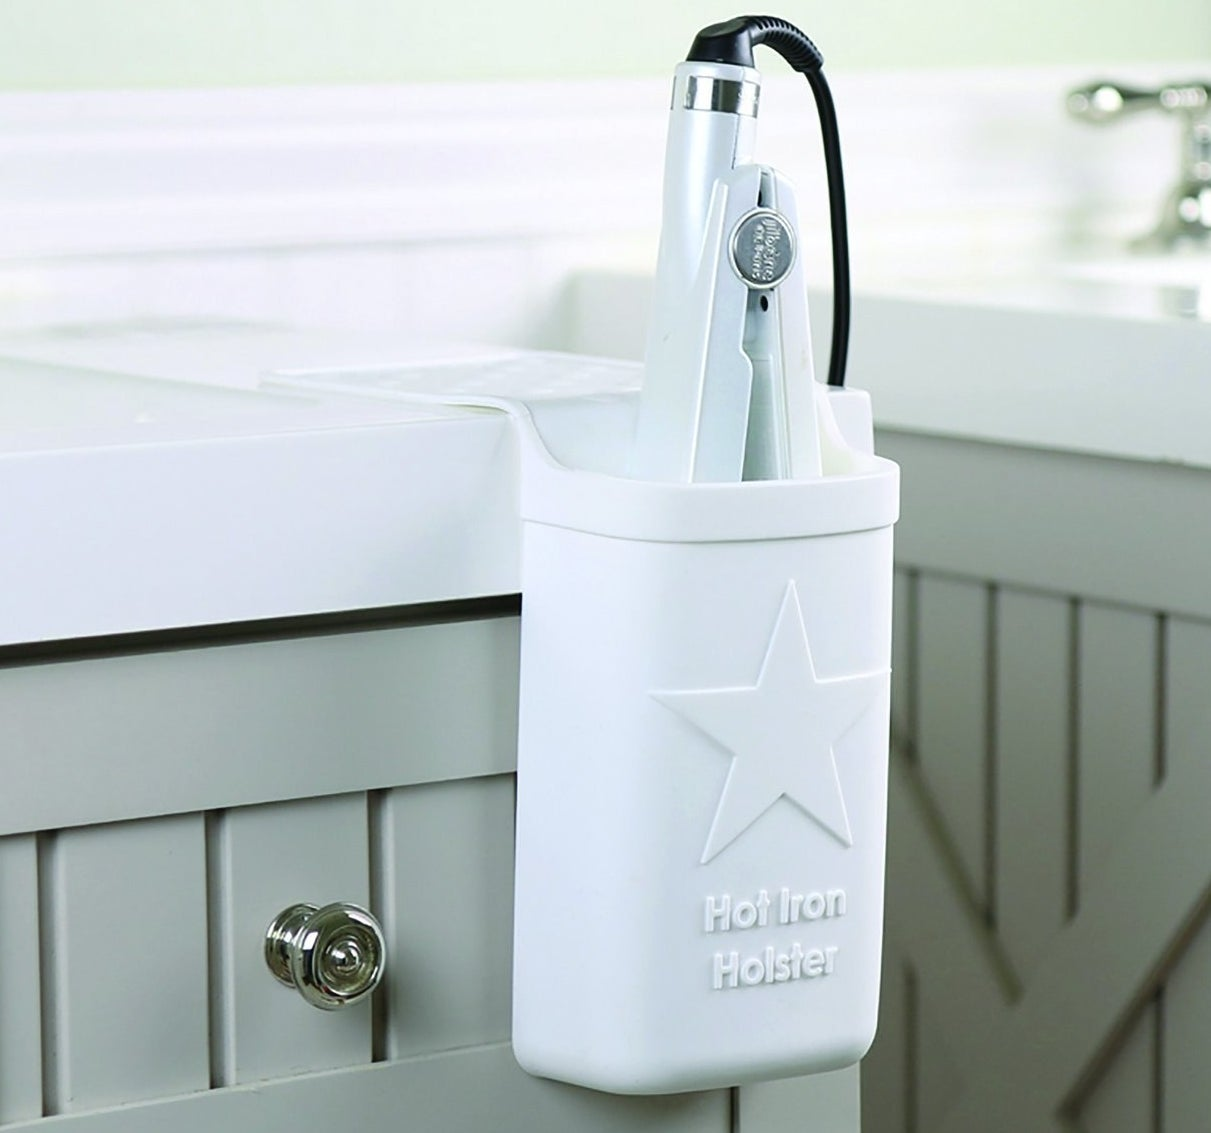 The silicone holster on a bathroom counter with a flat iron placed inside.